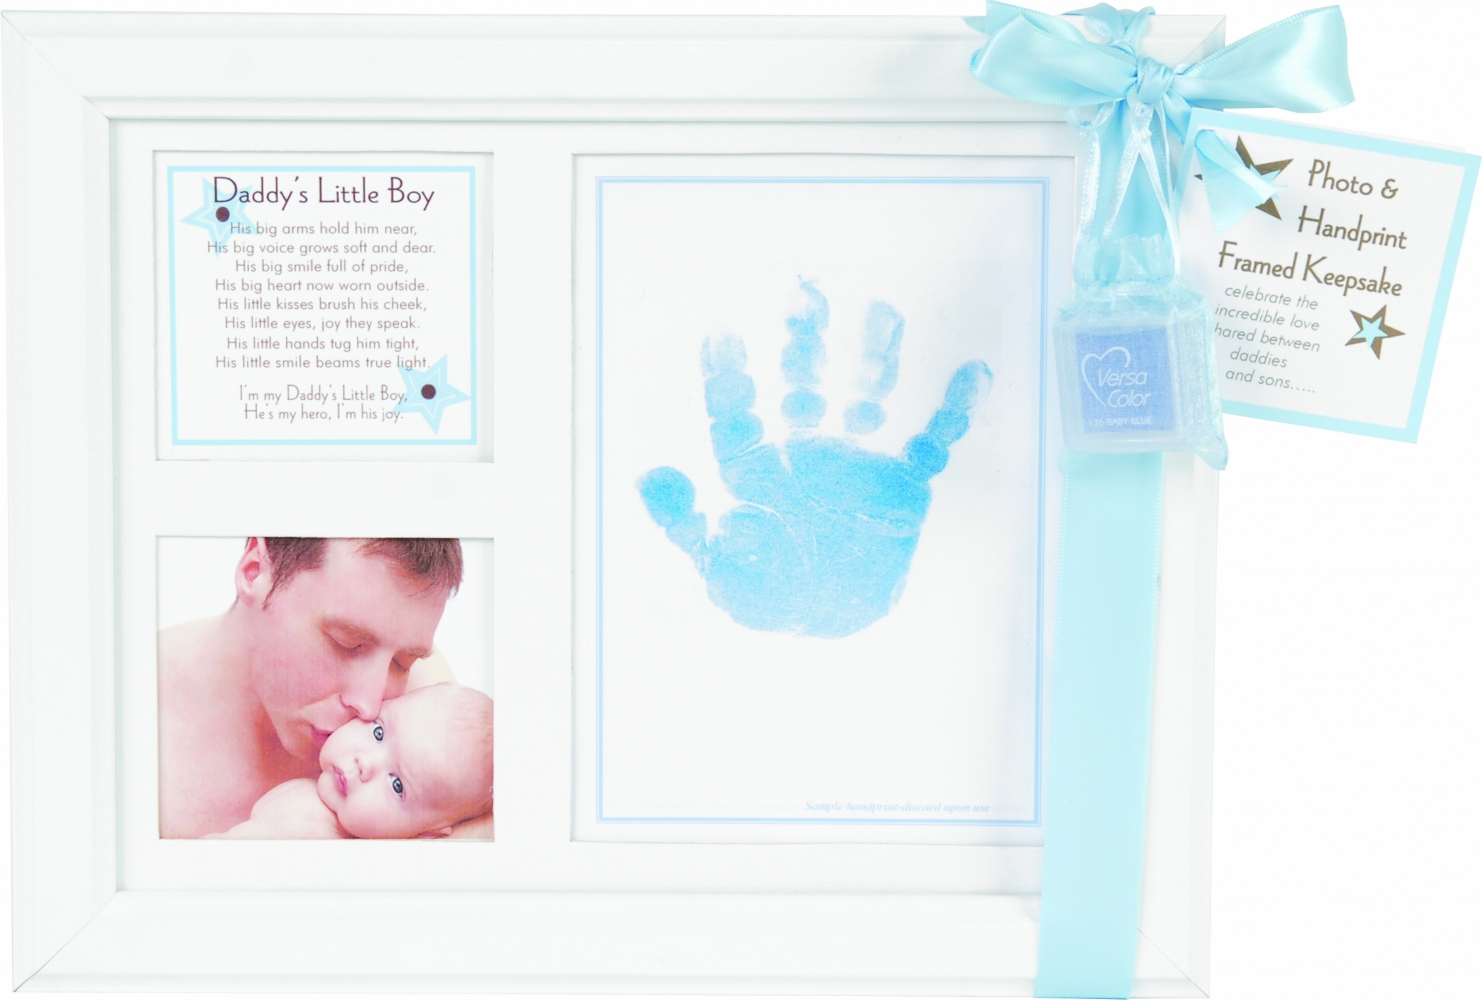 Baby Handprint Frame For Daddy\'s Little Boy | SimplyUniqueBabyGifts.com